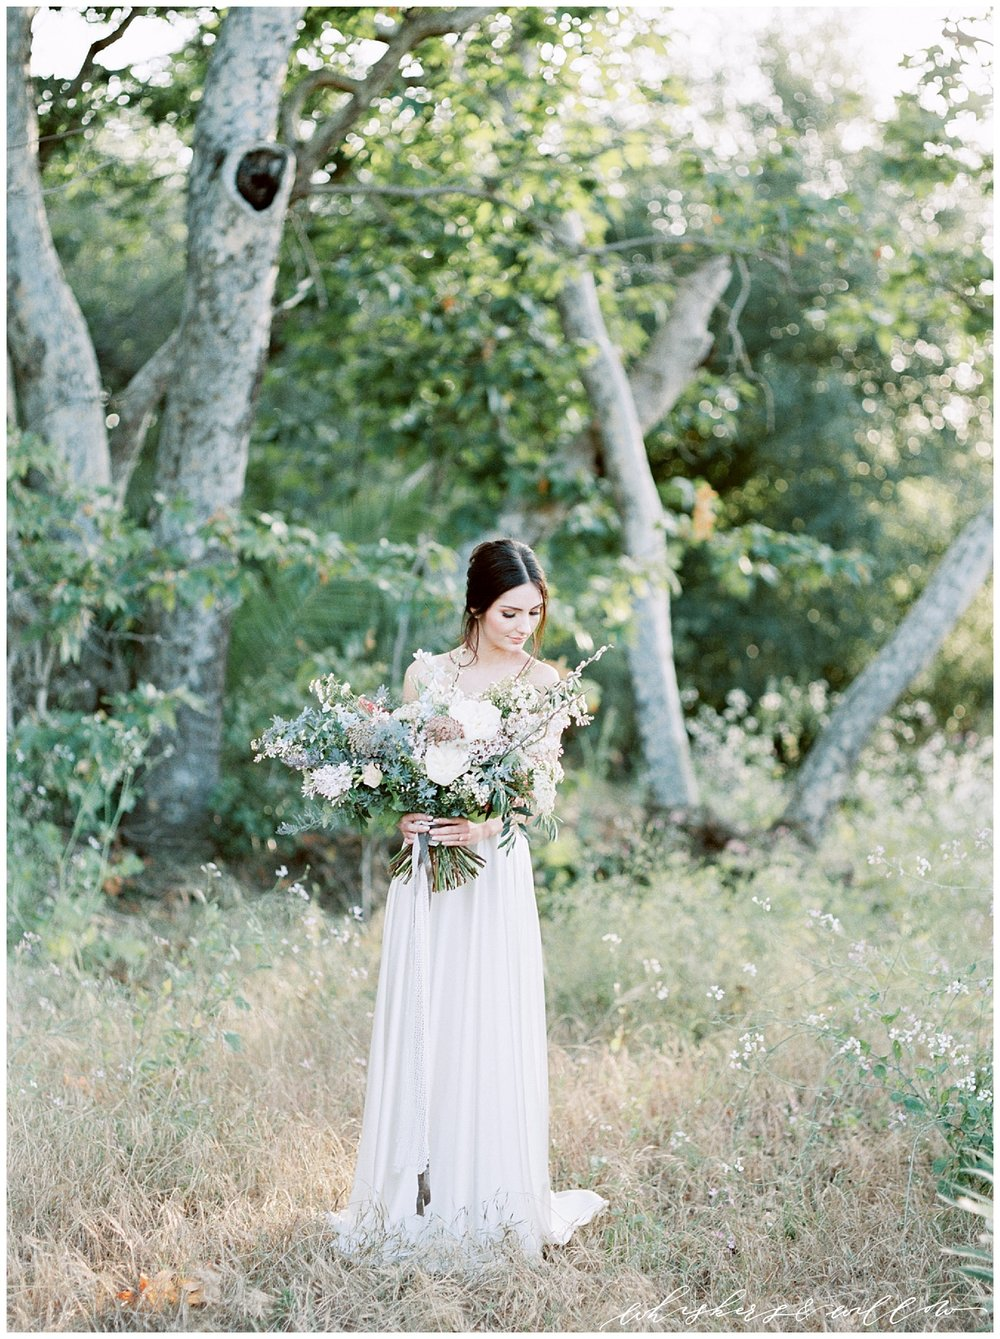 Garden wedding bridal inspiration | Modern garden wedding | San Diego Wedding Photographer | Type and Title | Whiskers and Willow Photography